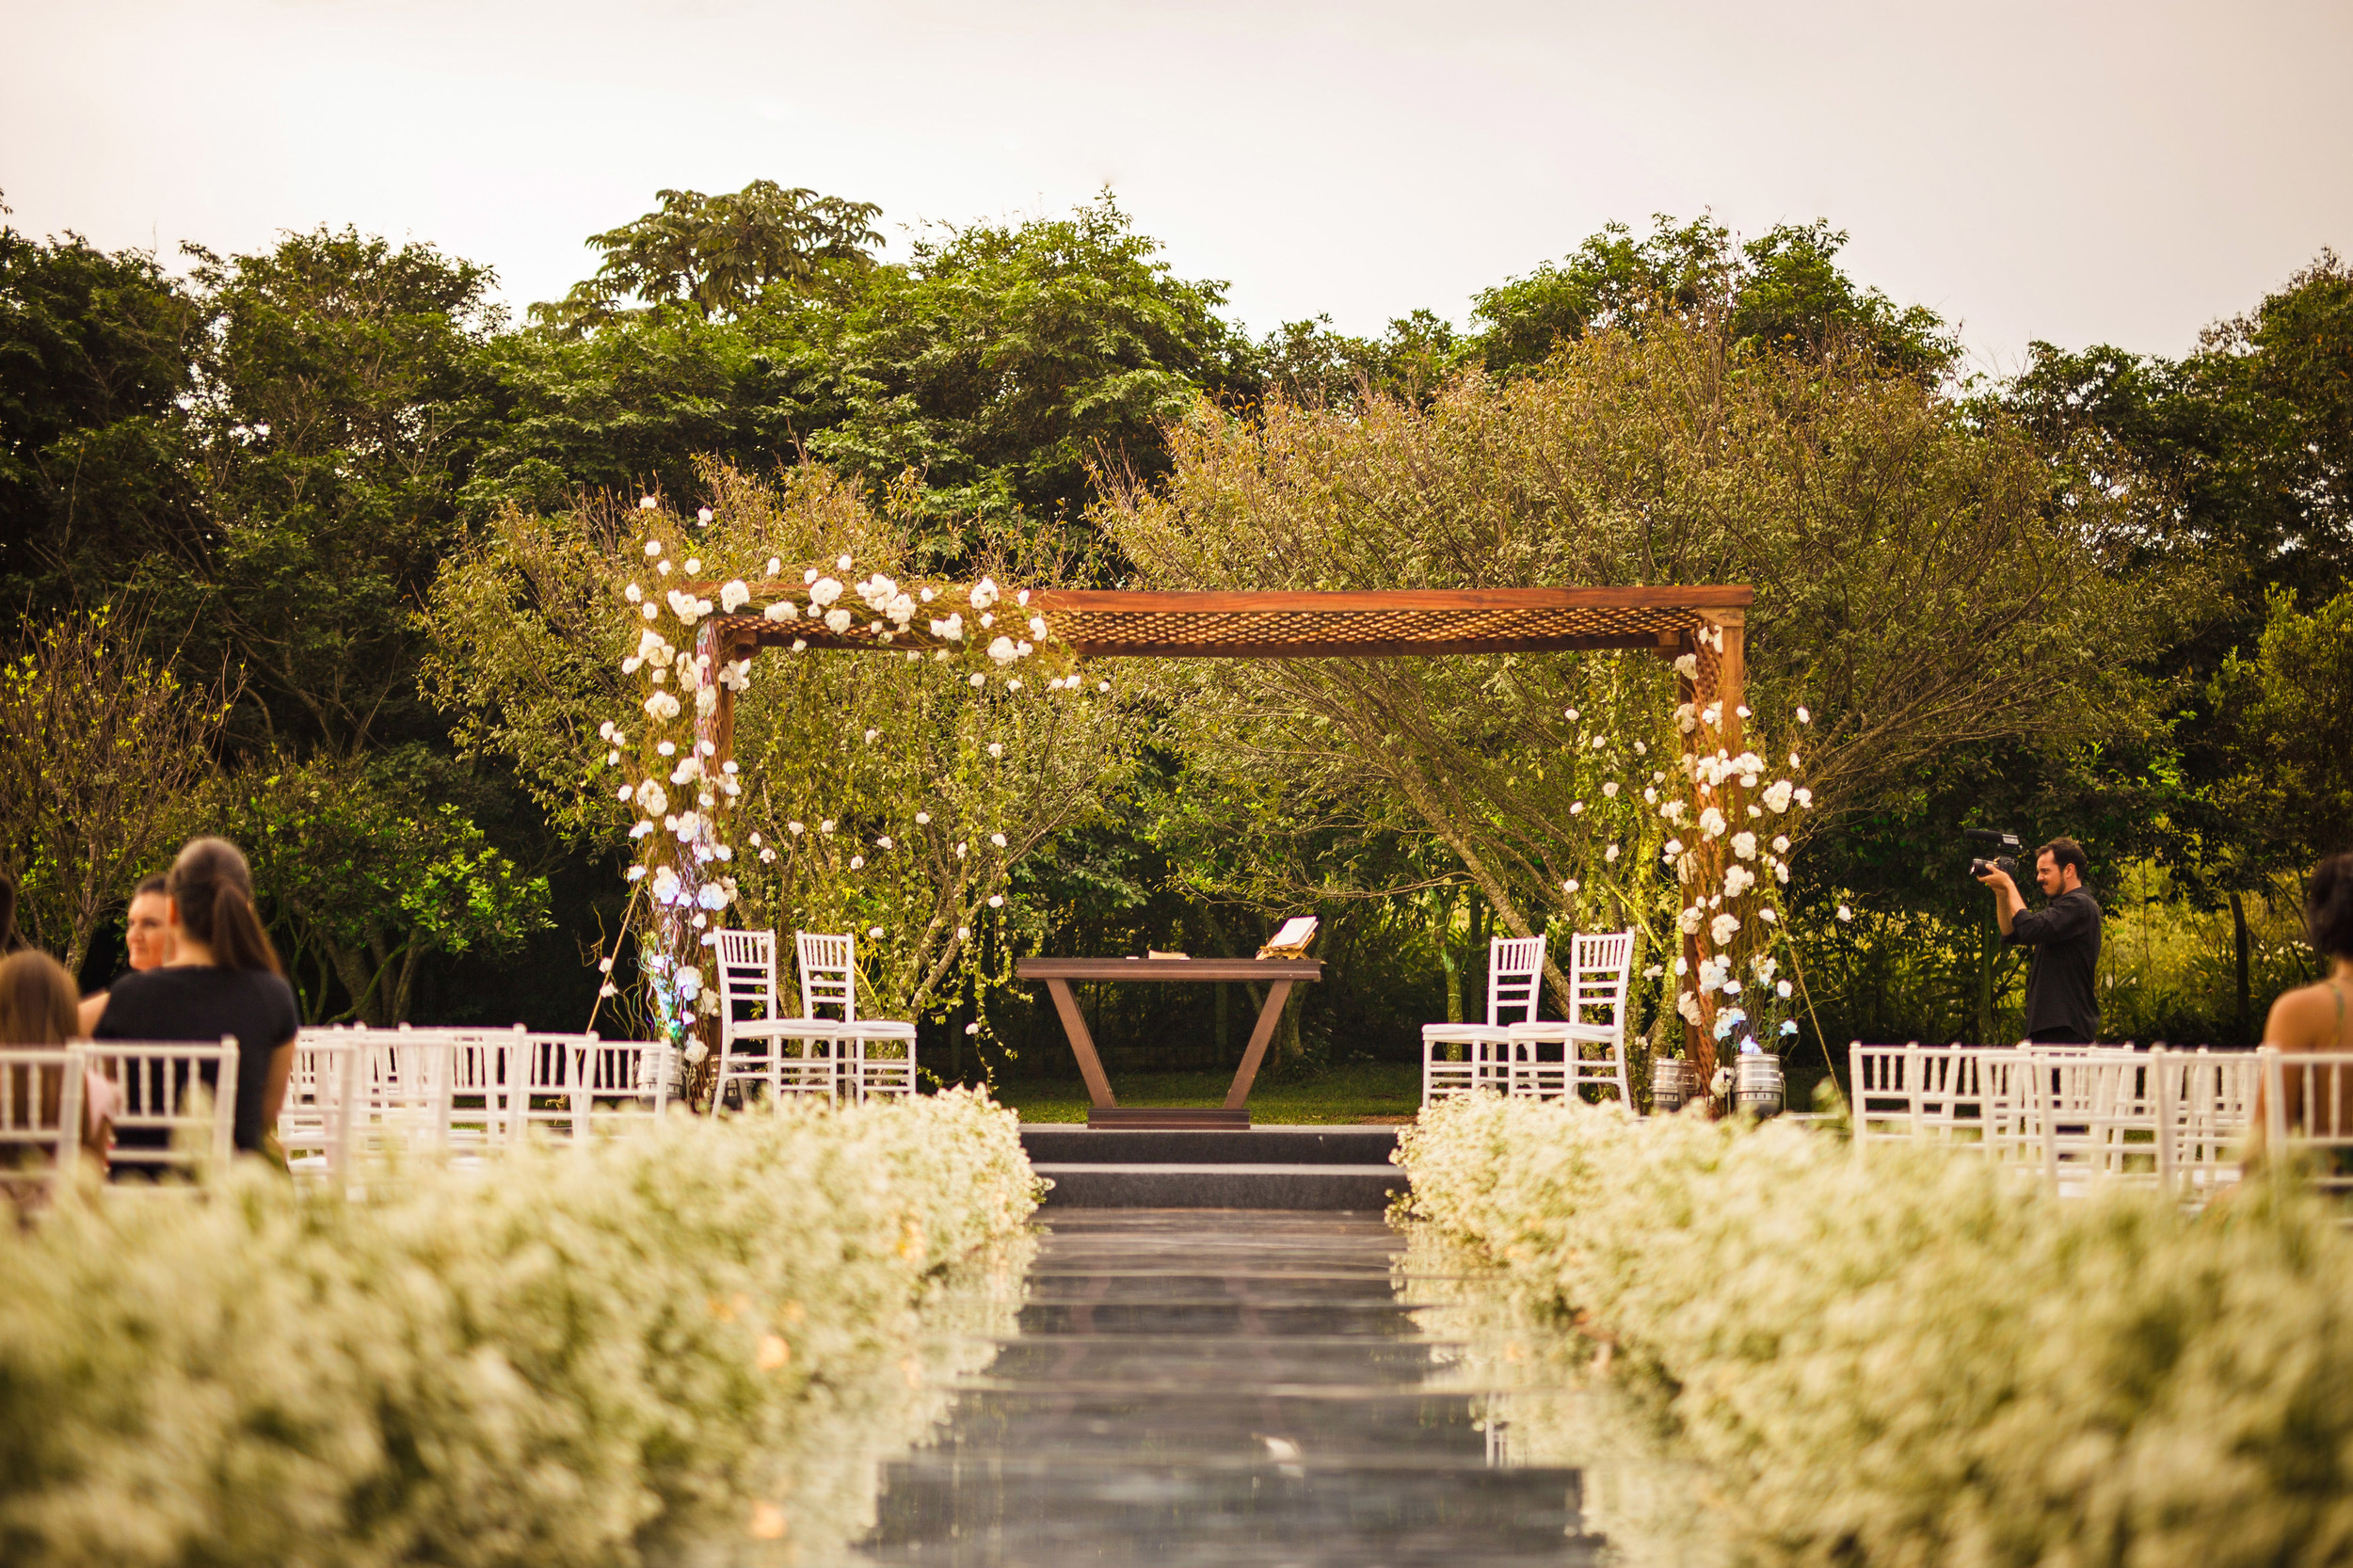 The beautiful wedding alley